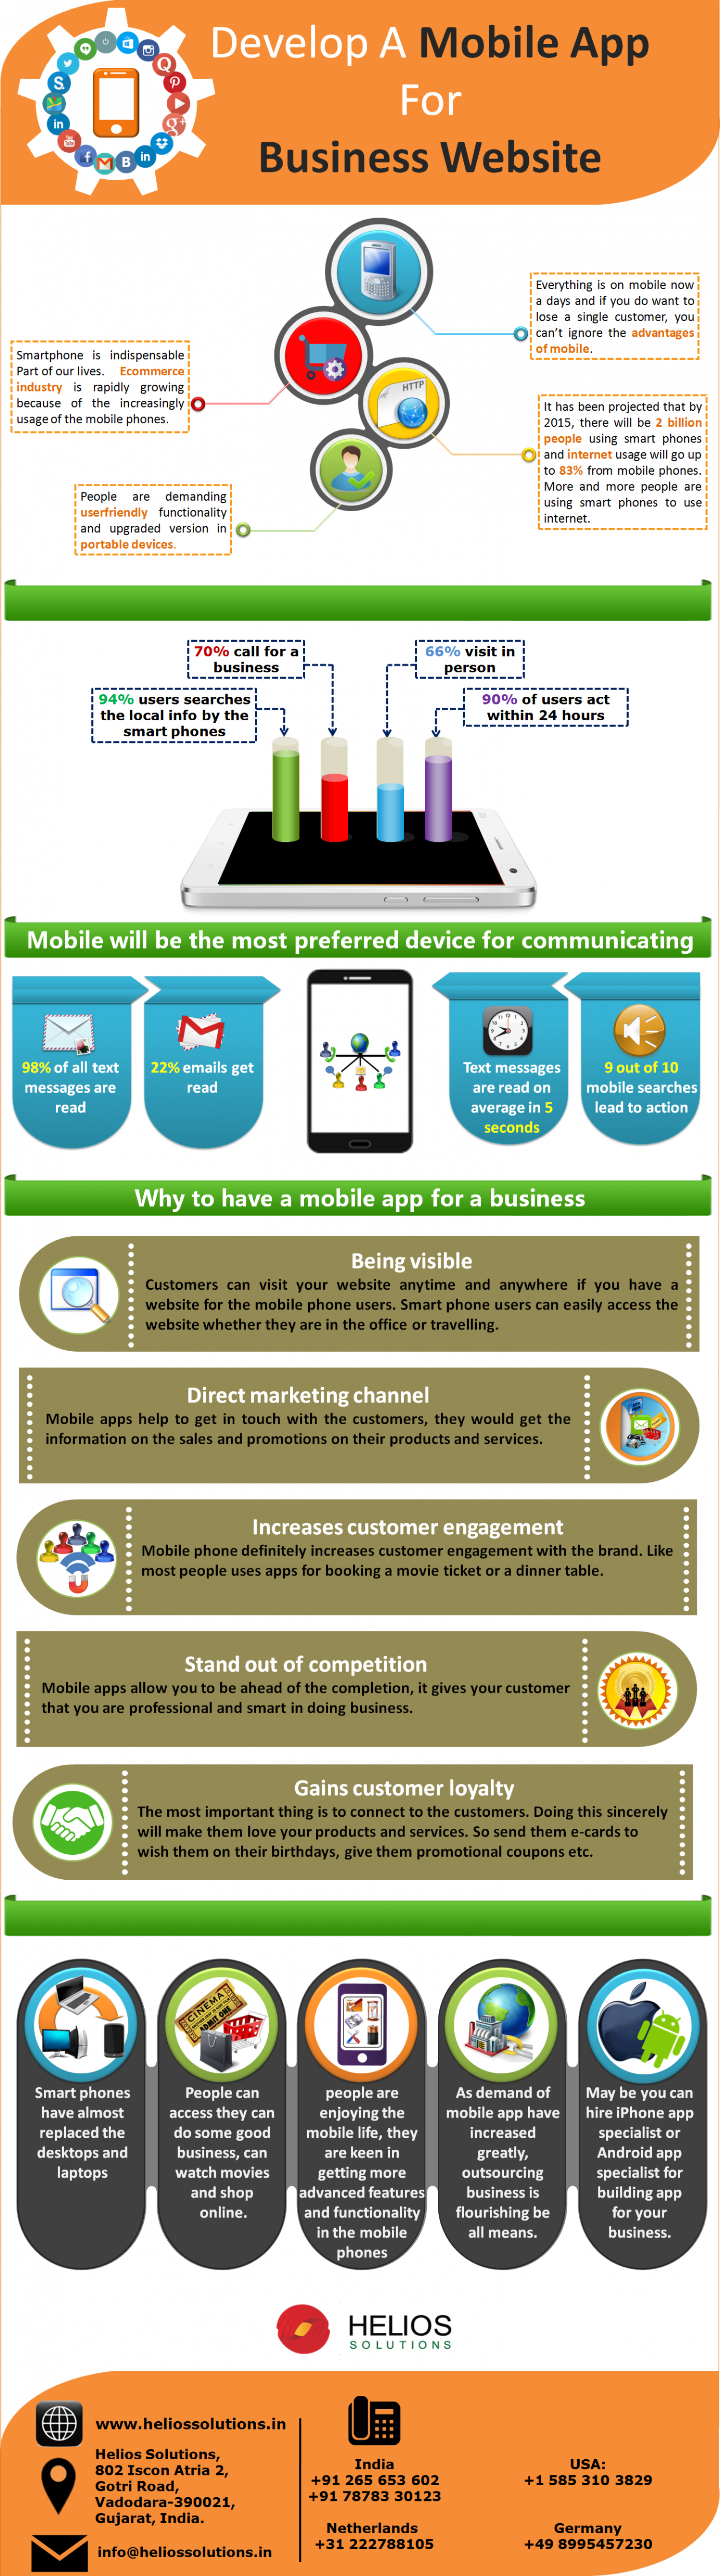 Develop A Mobile App for Business Website Infographic